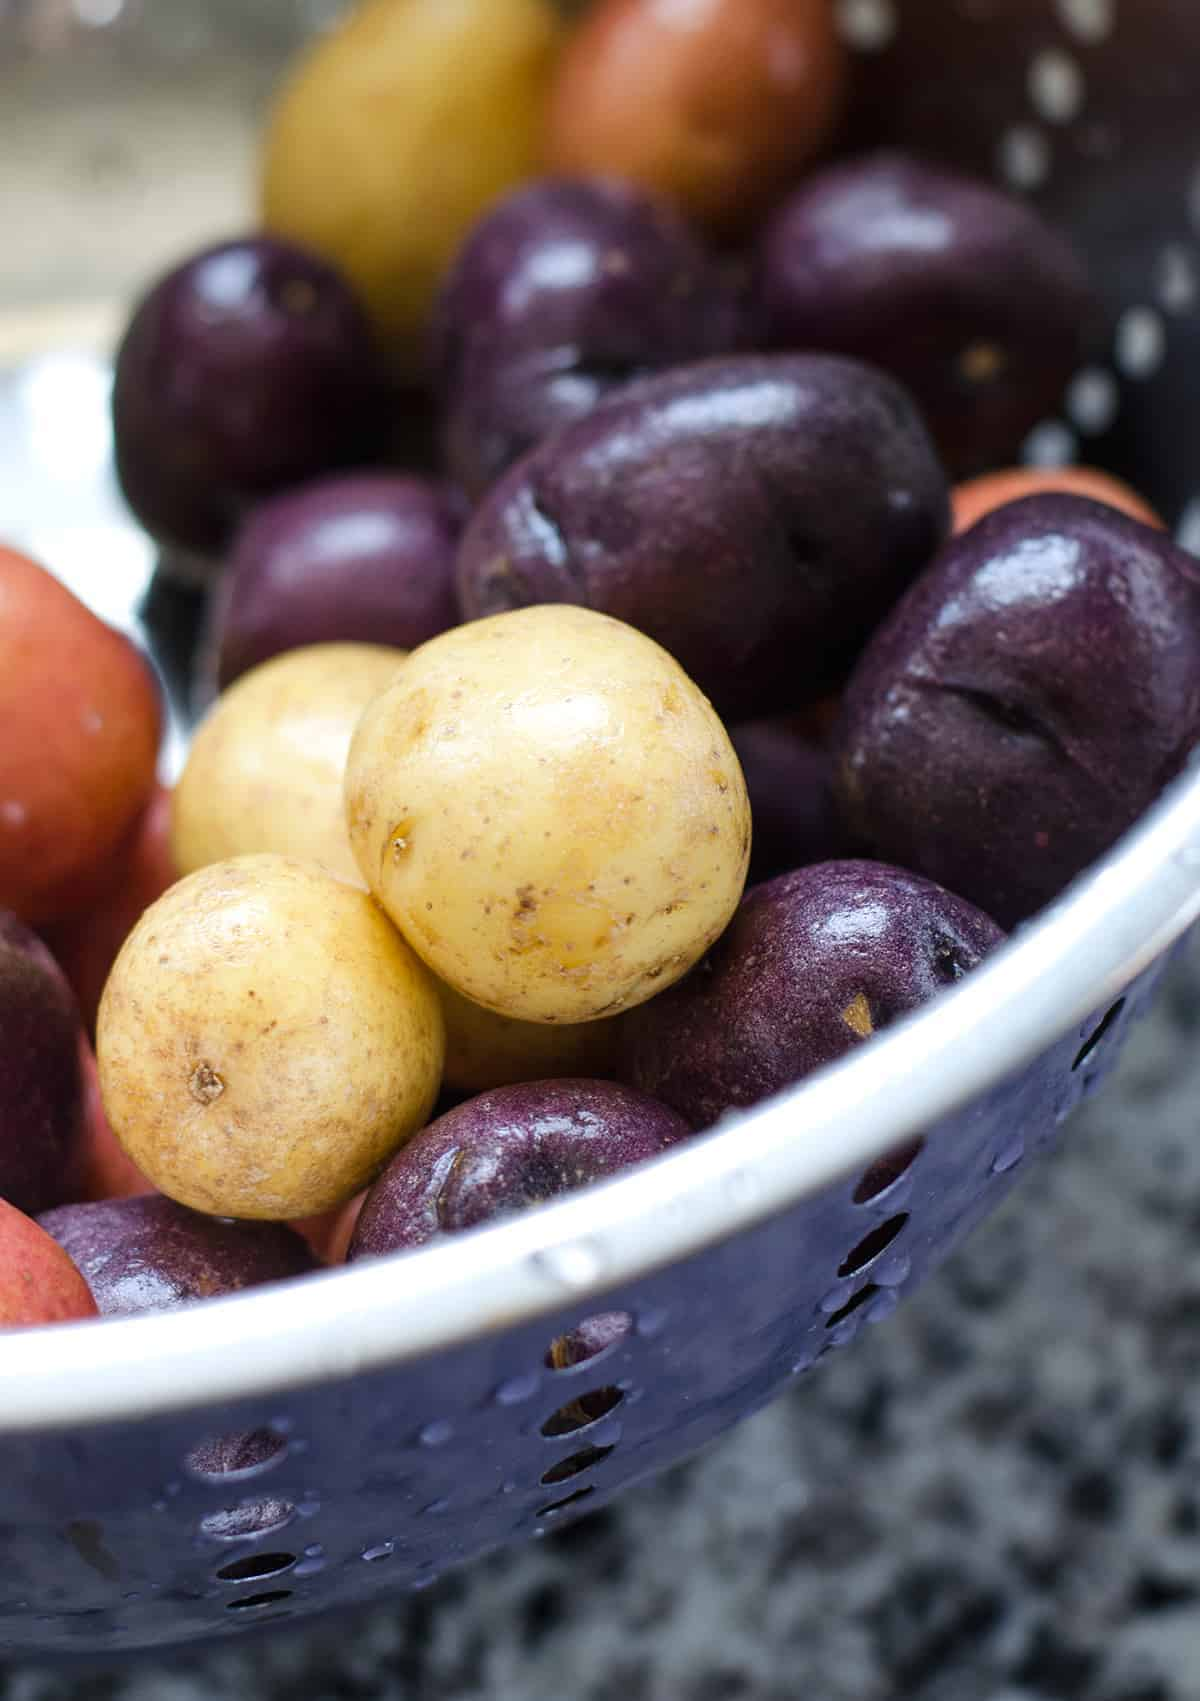 Red, White and Blue Potato Salad! Ready in just 15 minutes! Vegan and Gluten-Free. Little creamer potatoes tossed in a tangy herb dressing. Perfect for summer BBQs, Picnics and Cookouts!   www.delishknowledge.com